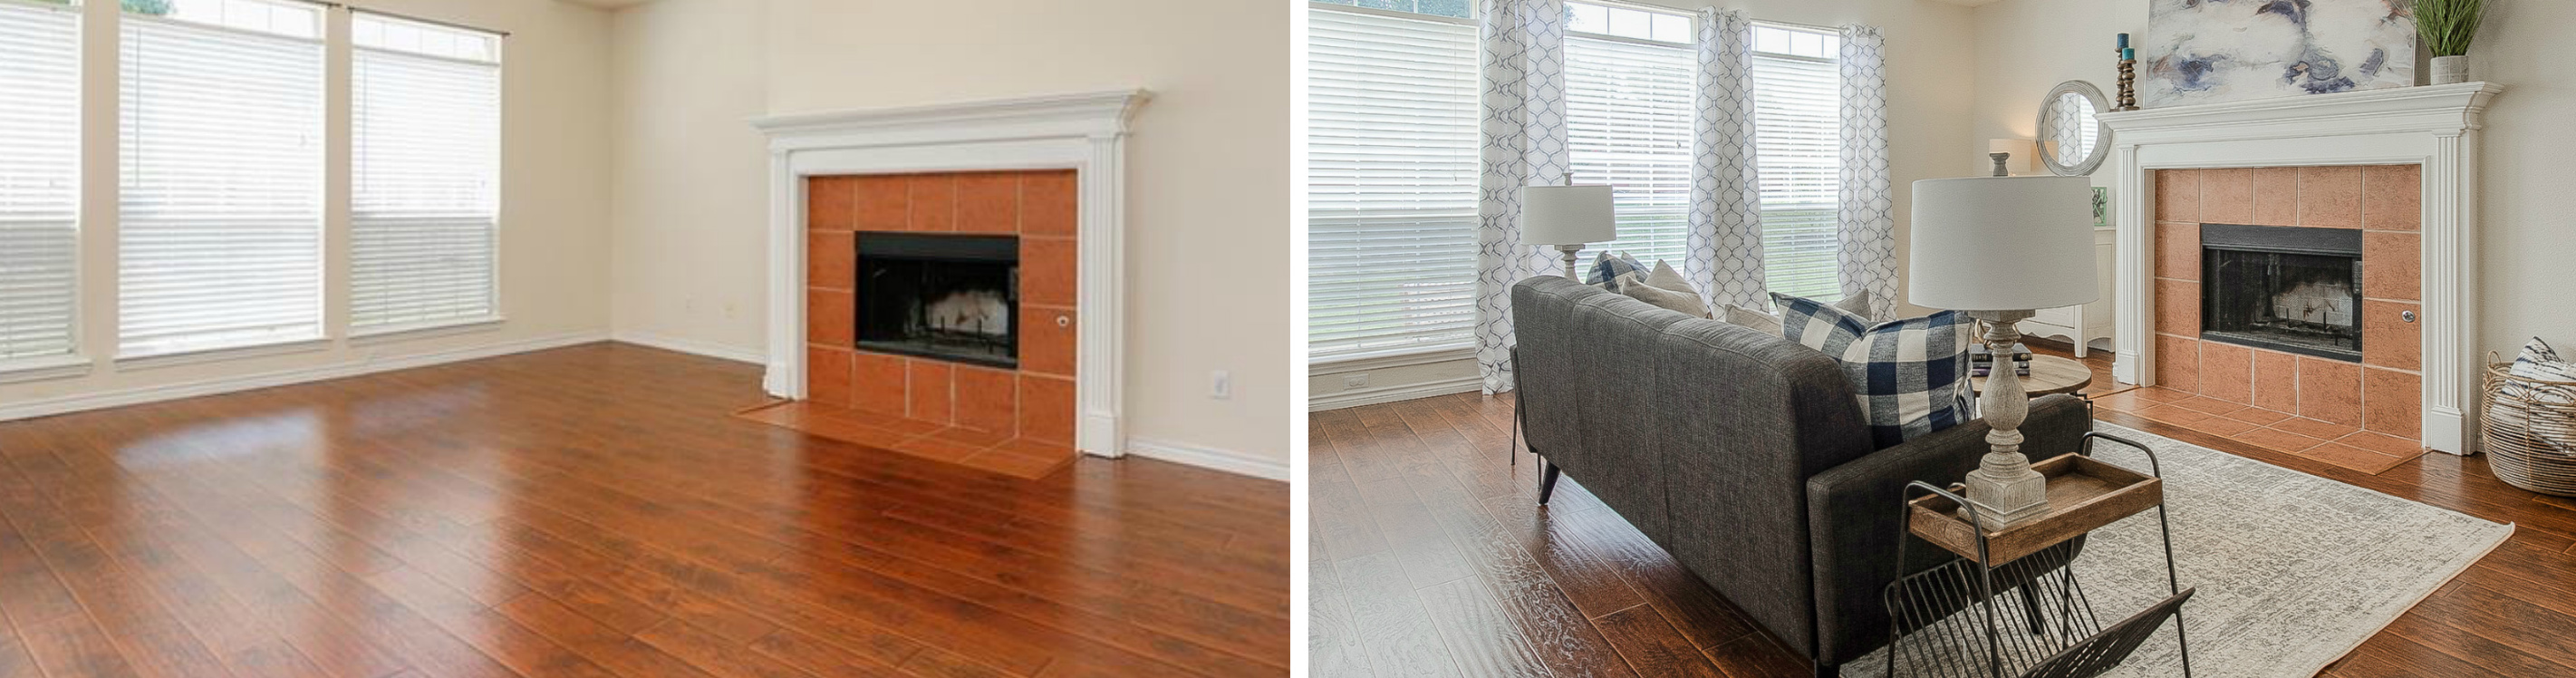 Before and After: Home Staging Transformations